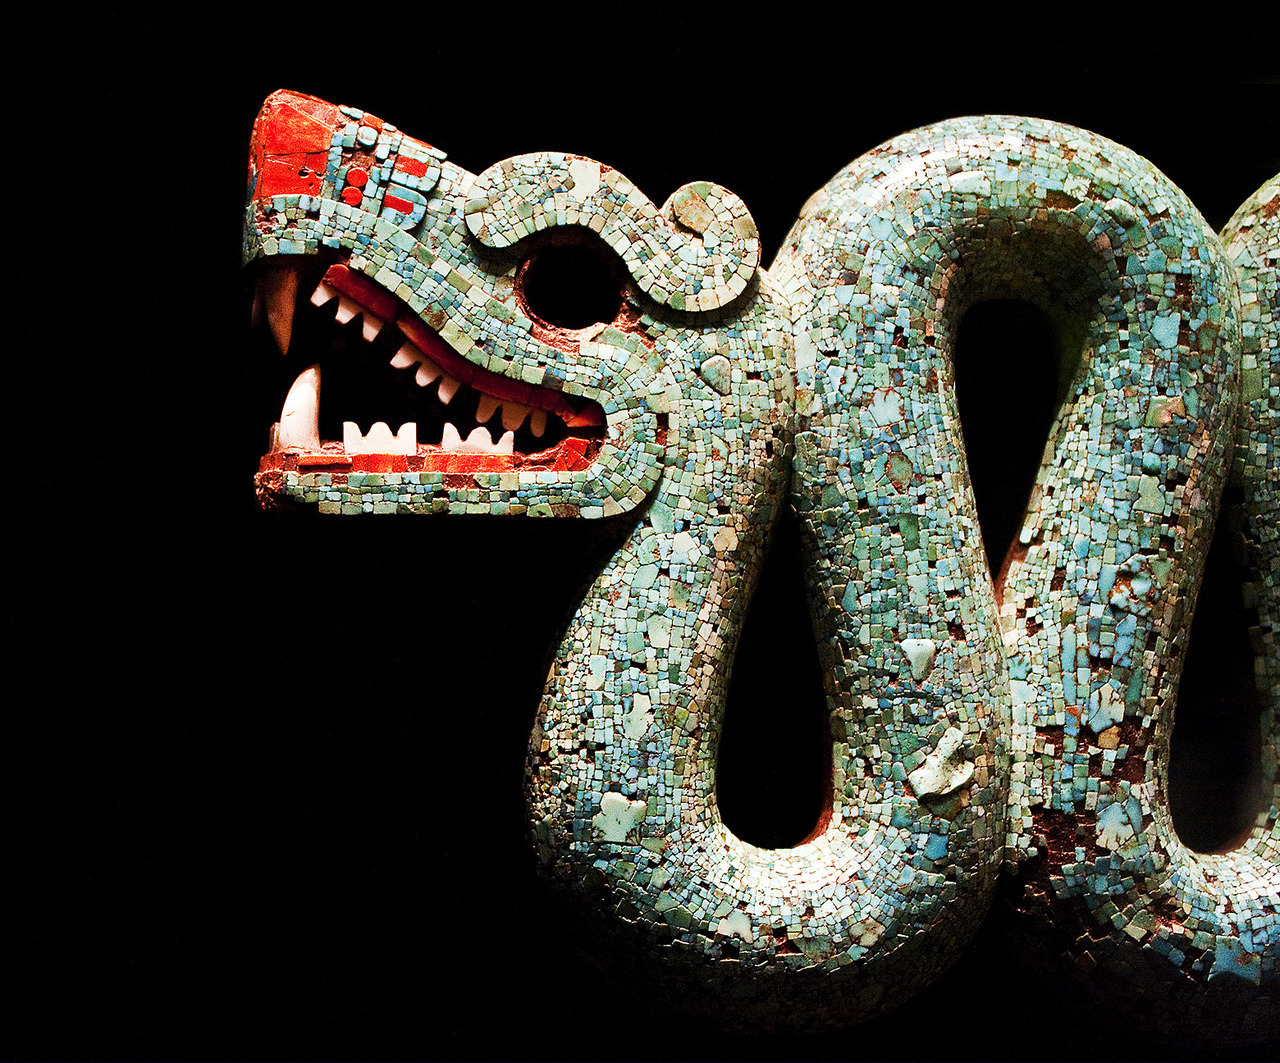 ancientart:  The ancient Aztec double-headed serpent god Quetzalcoatl mosaic, currently in the British Museum. It is thought to be displayed during religious ceremonies.